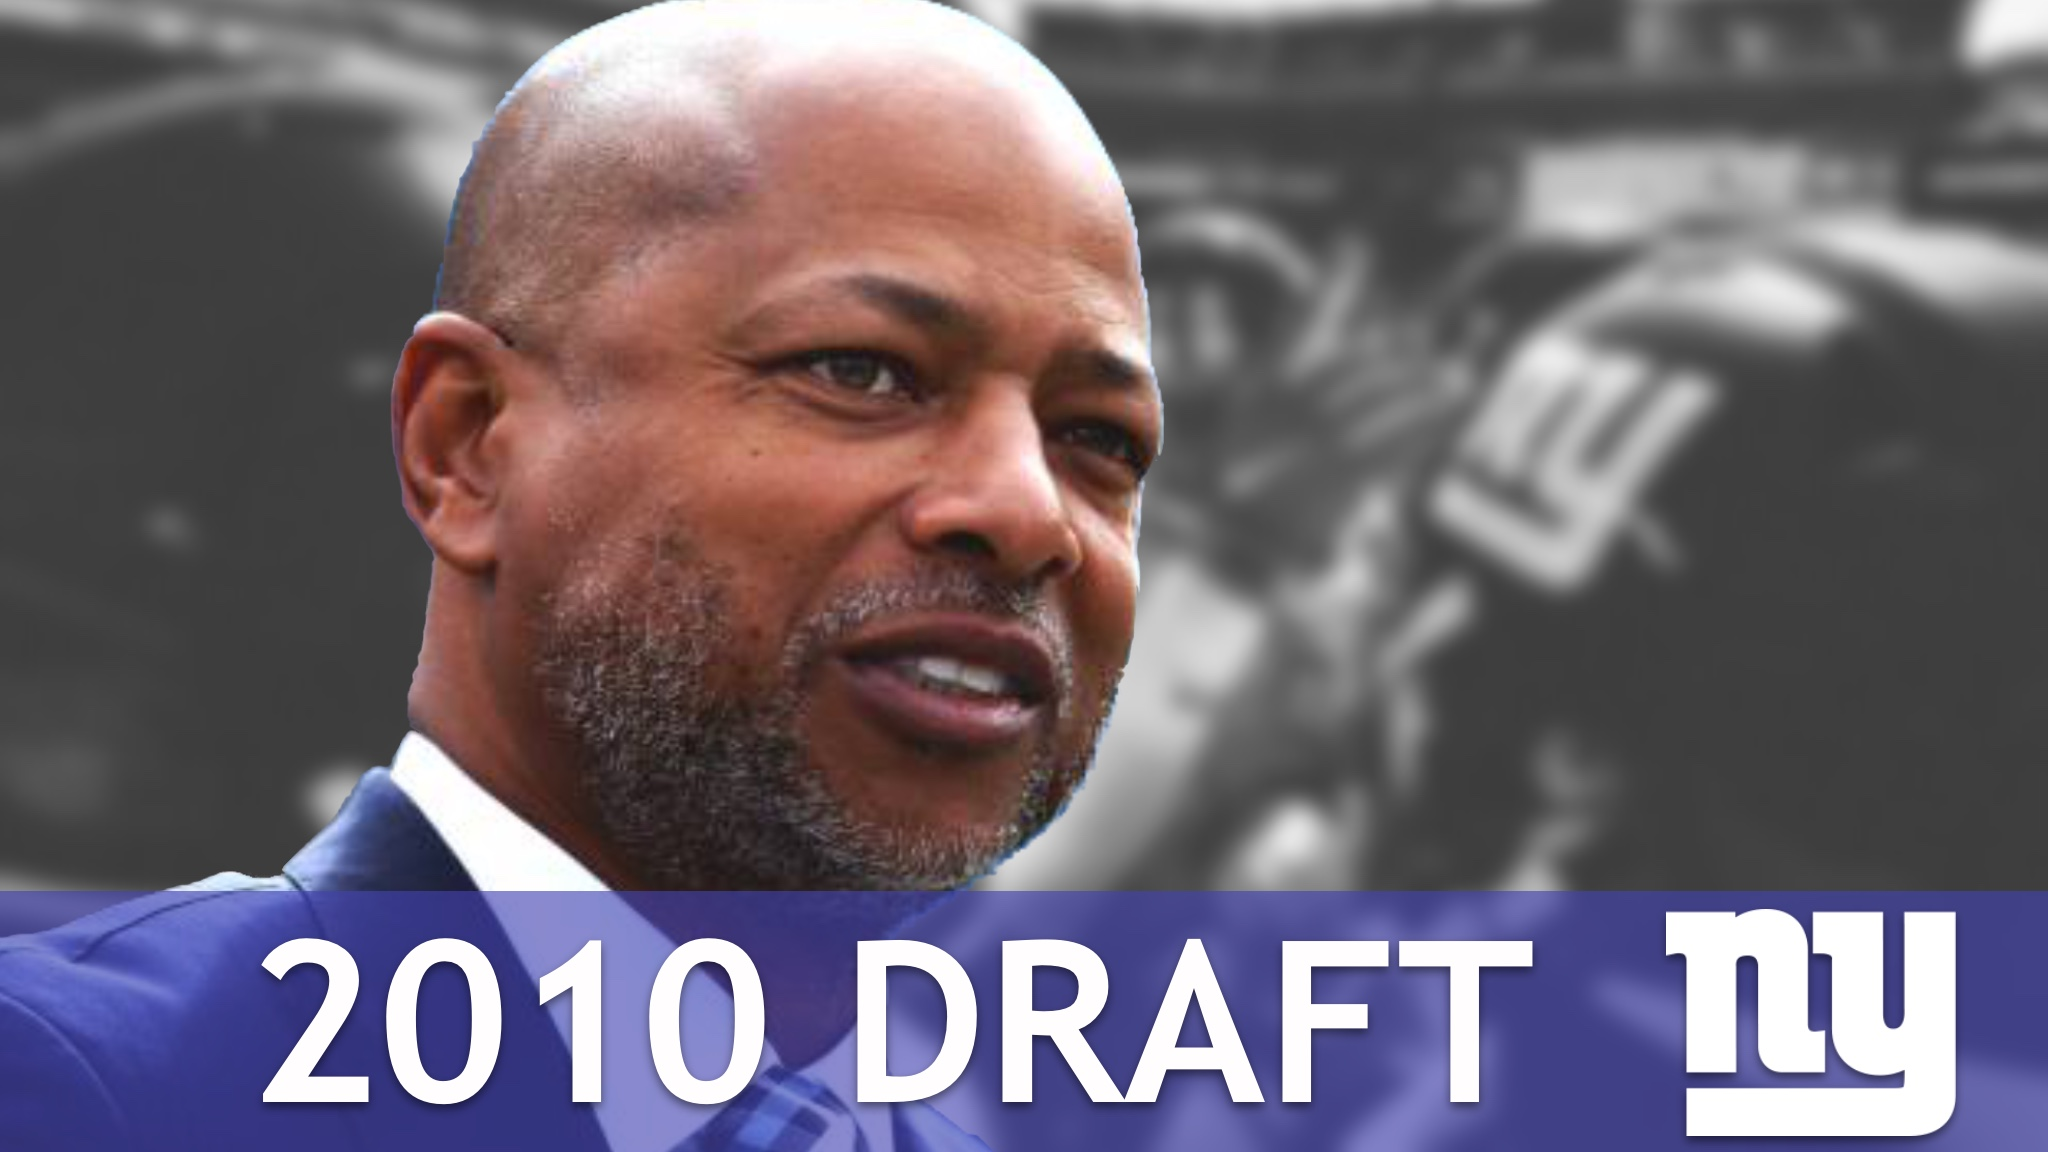 New York Giants 2010 Draft Under GM Jerry Reese